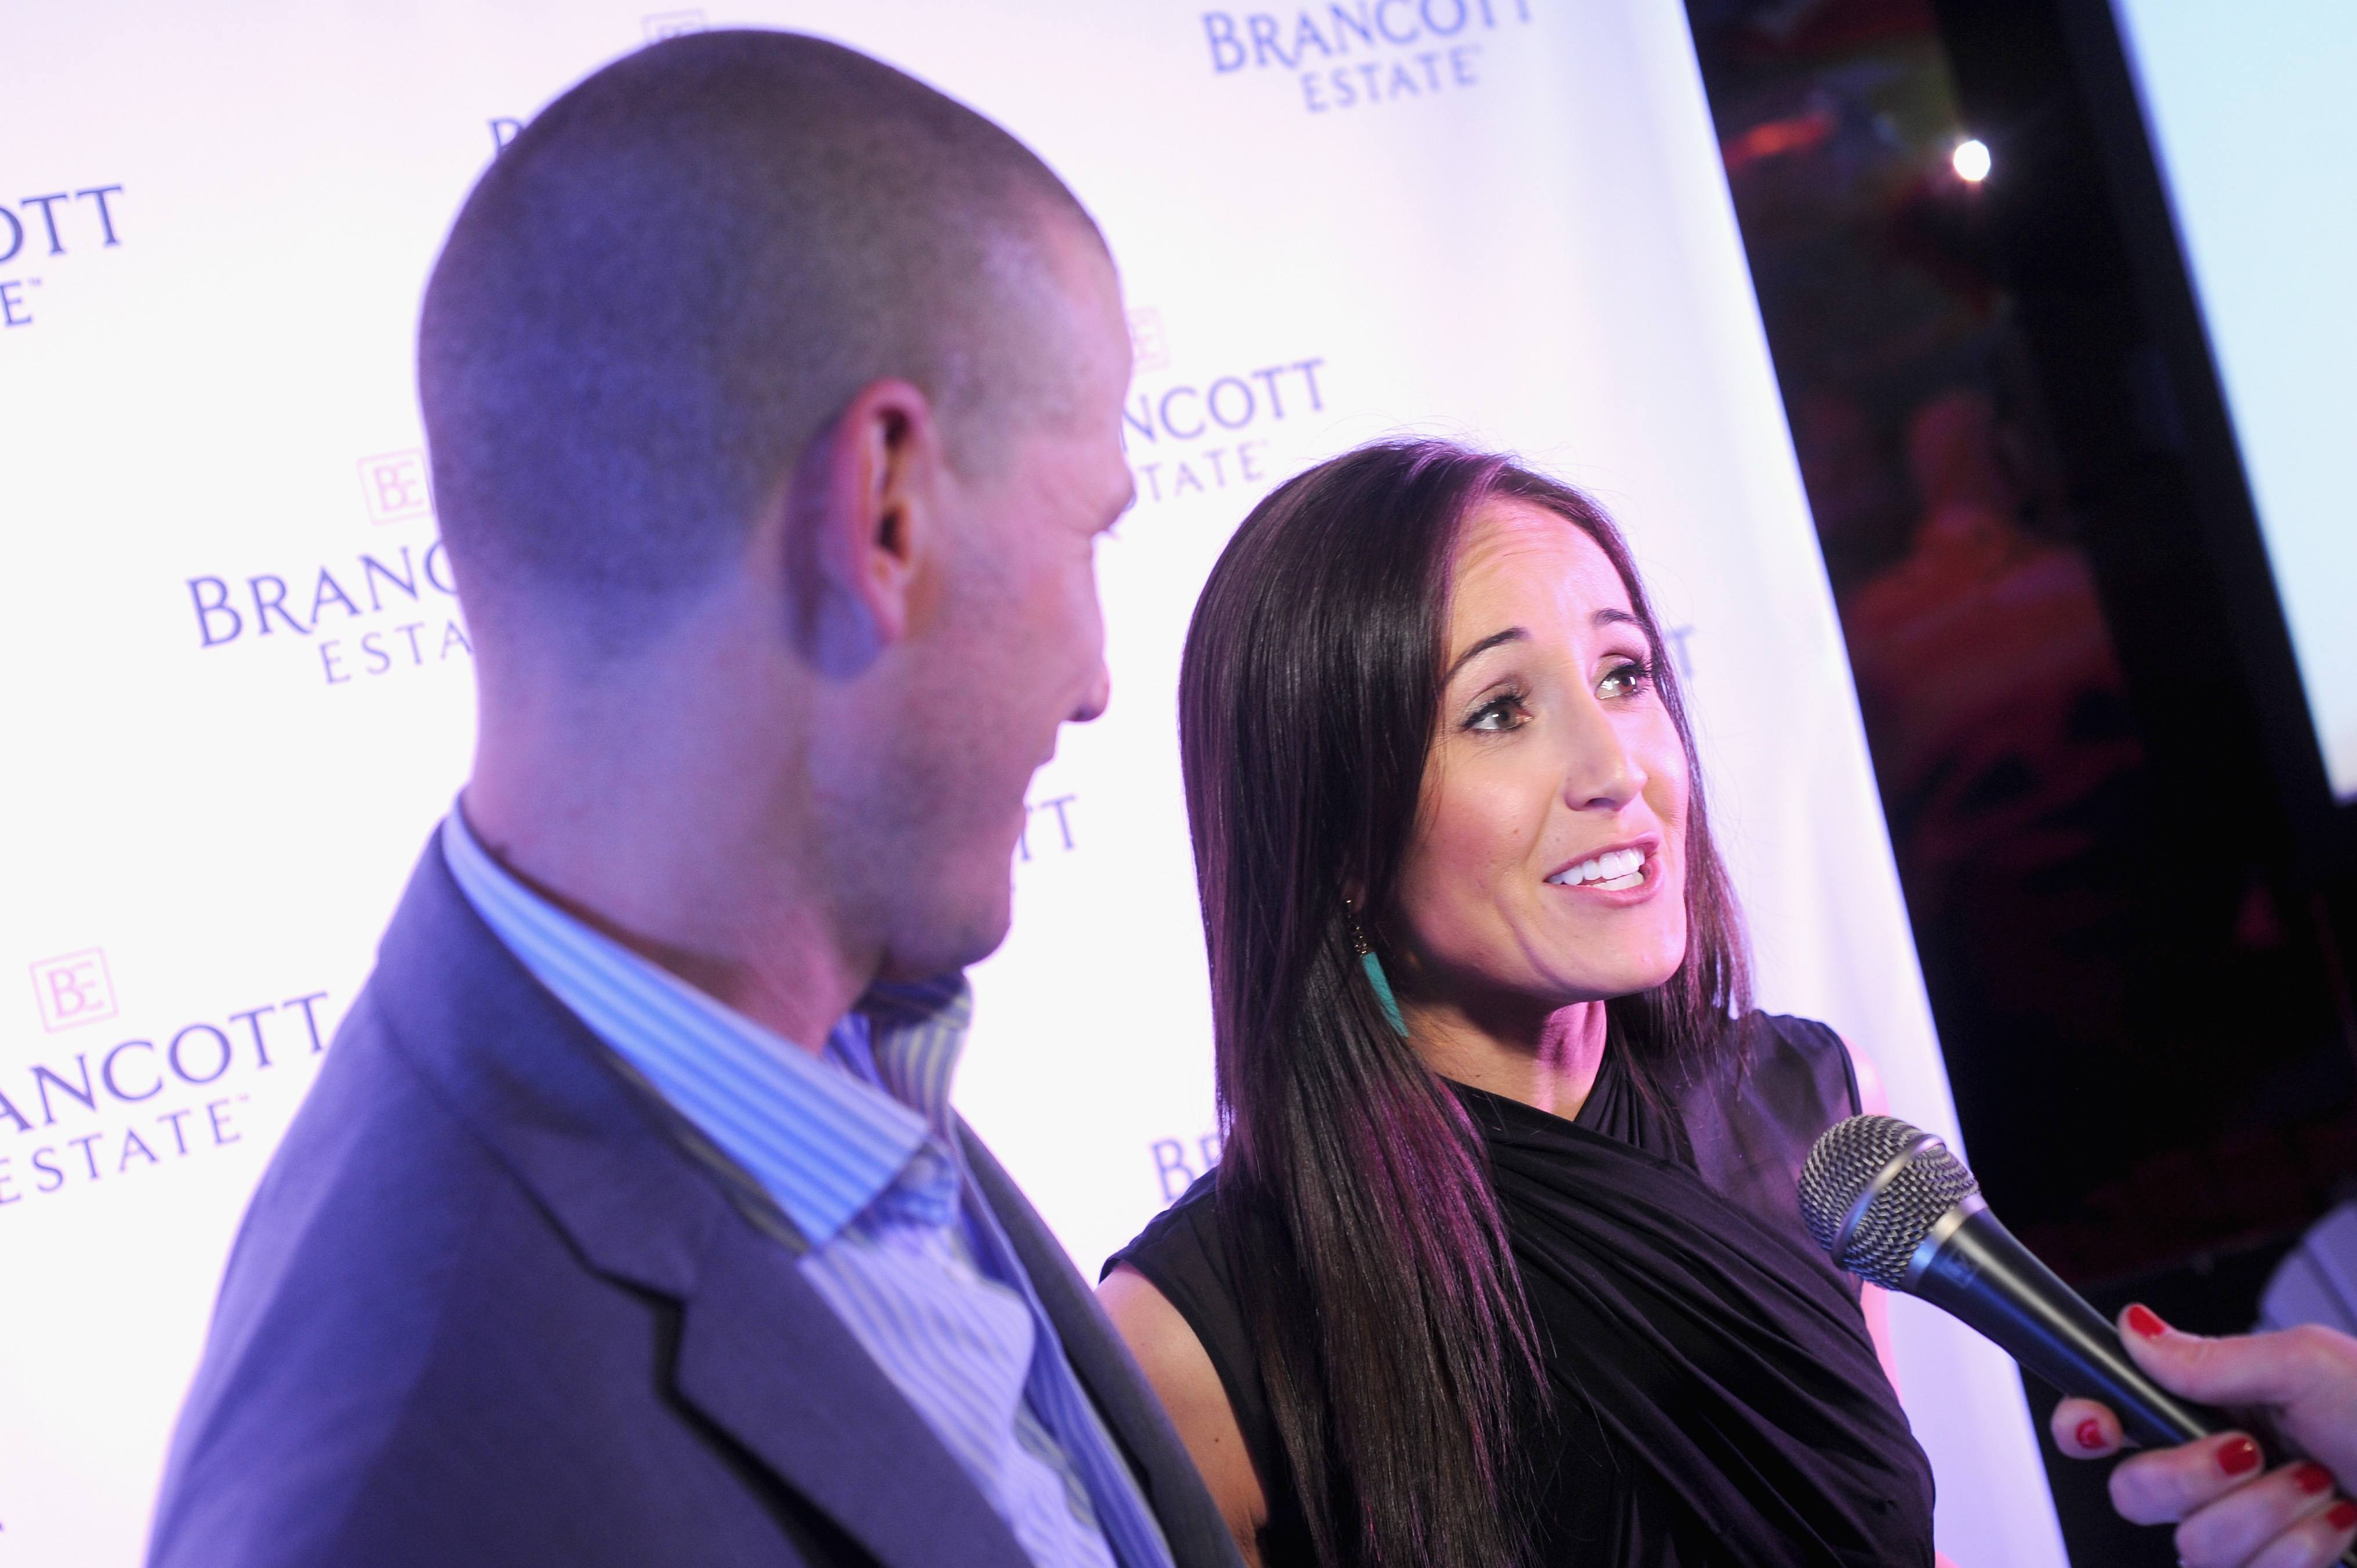 Ashley Hebert and J.P. Rosenbaum Celebrate Brancott Estate Chill Hour